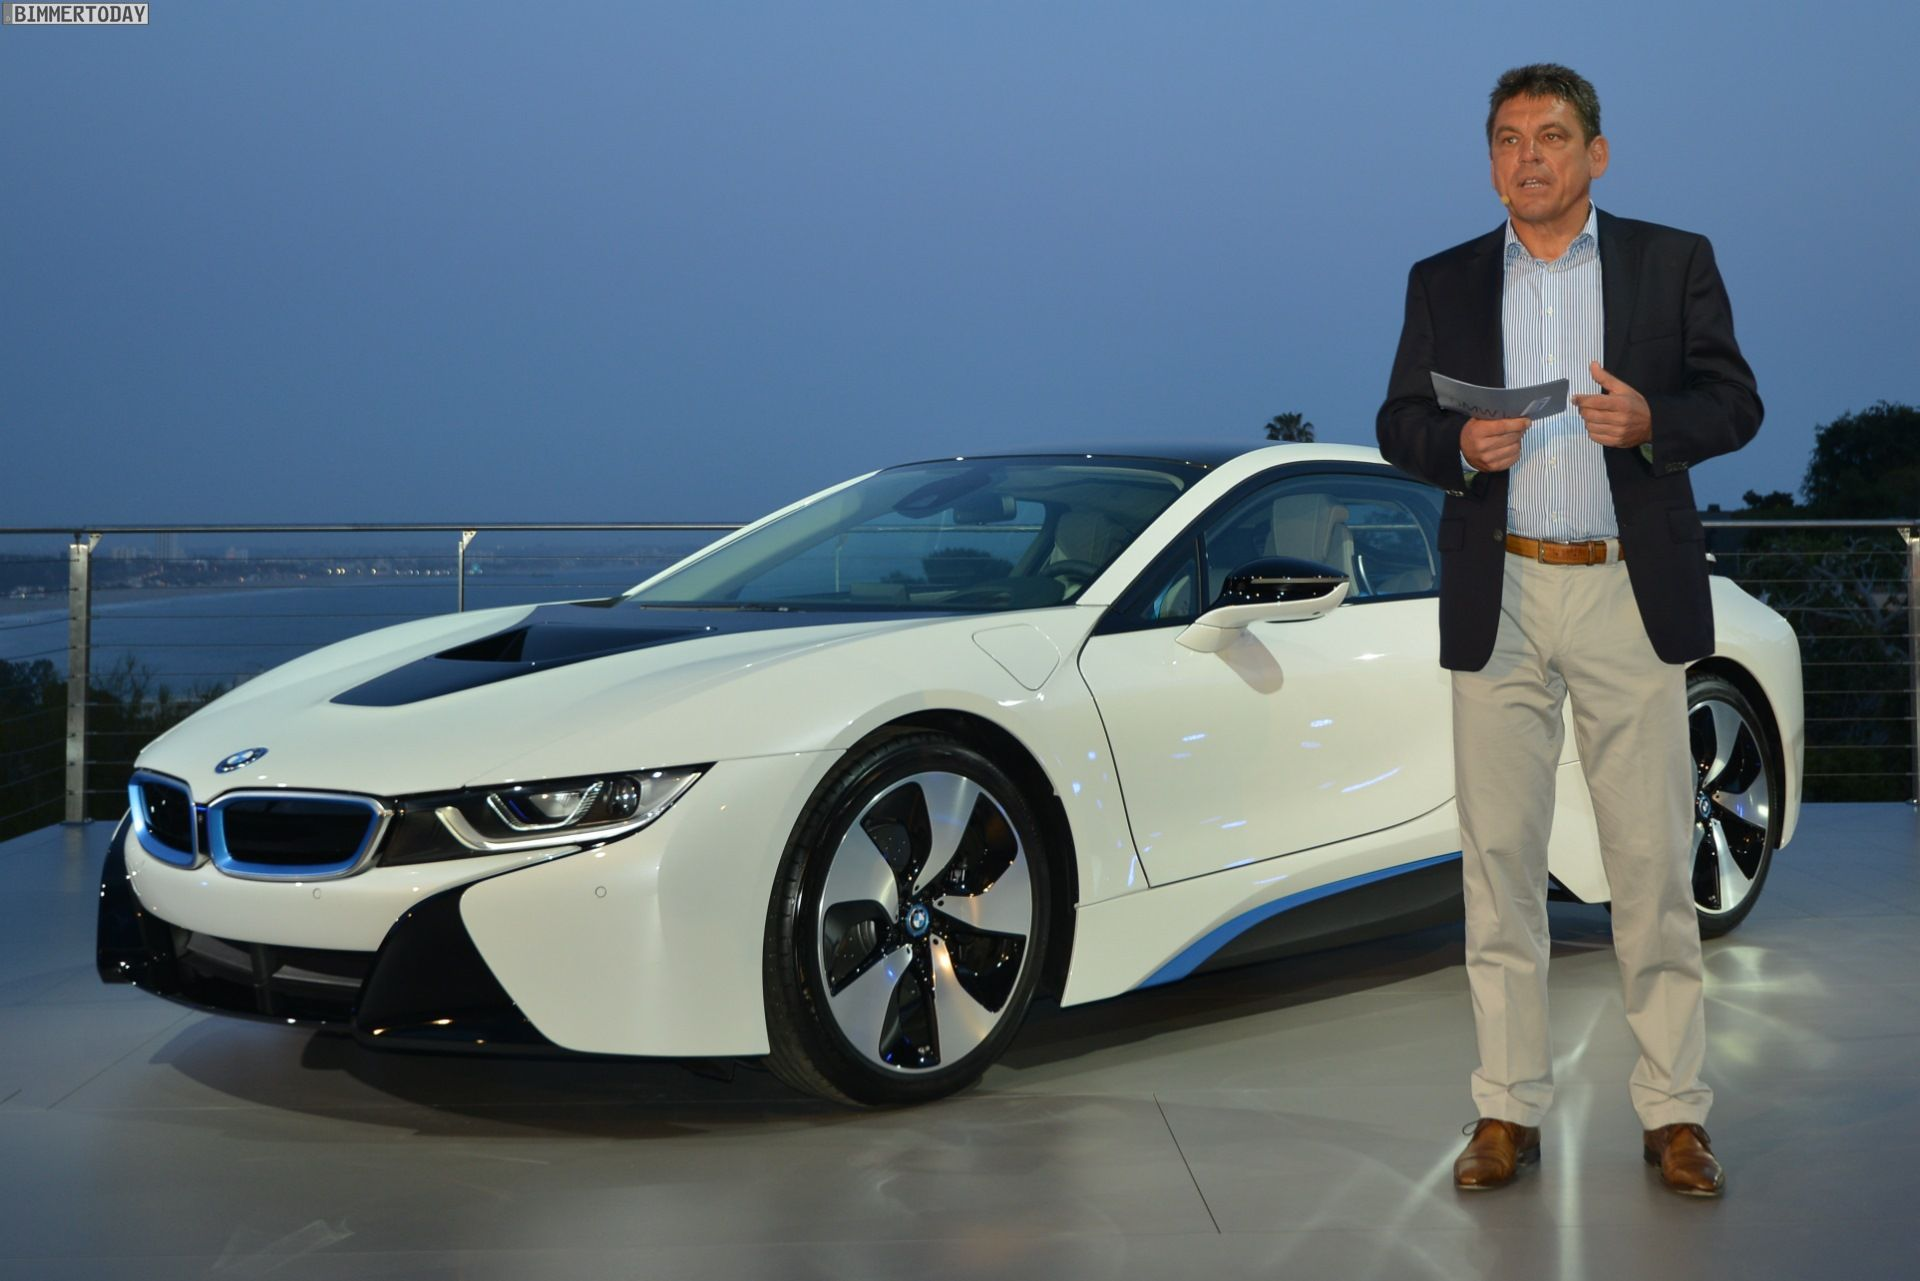 Former Bmw I8 Project Manager Is Now The Ceo Of Chinese Startup